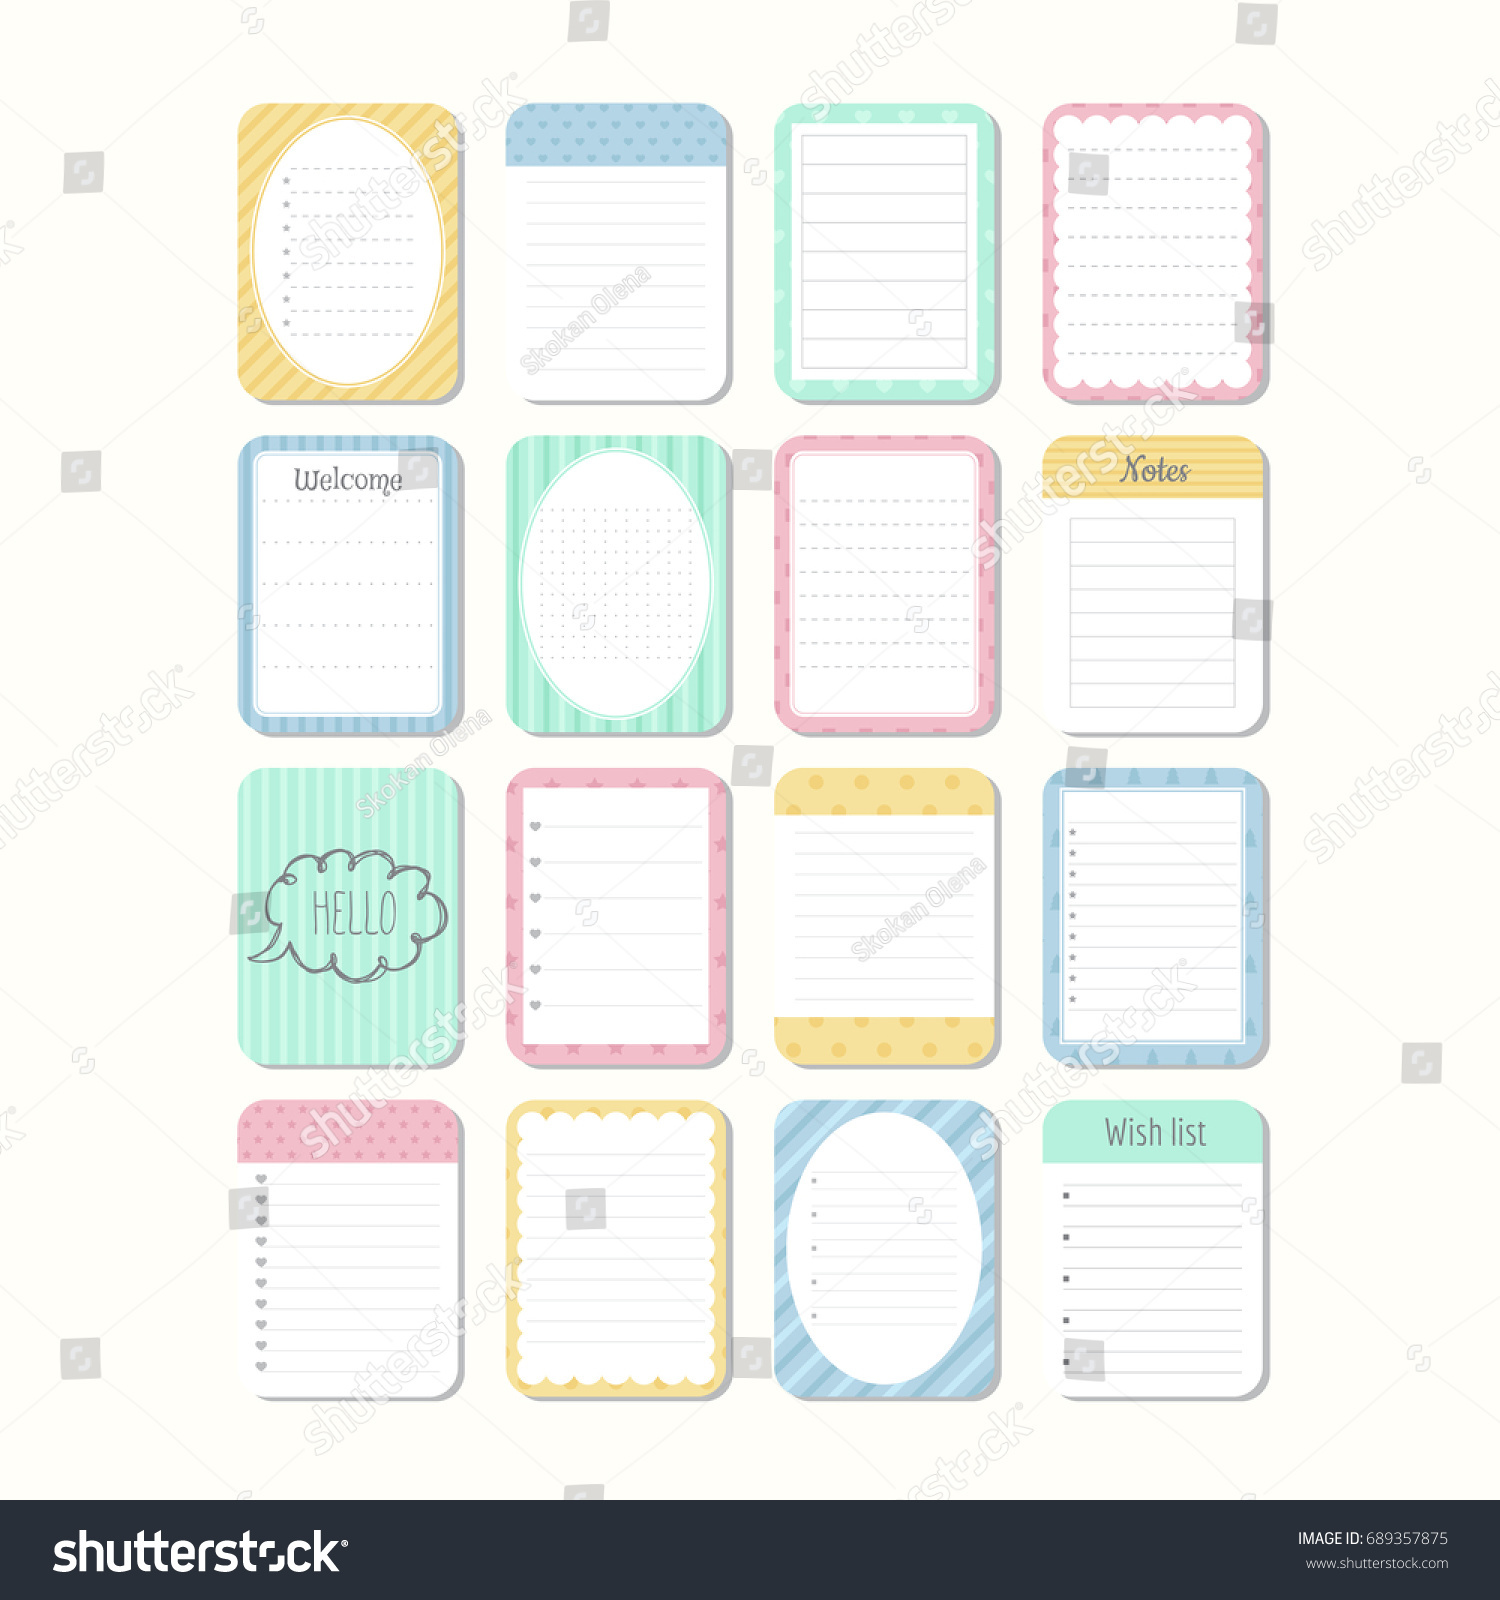 Notepad Template | Sheets Paper Template Notepad Collection Various Stock Vector